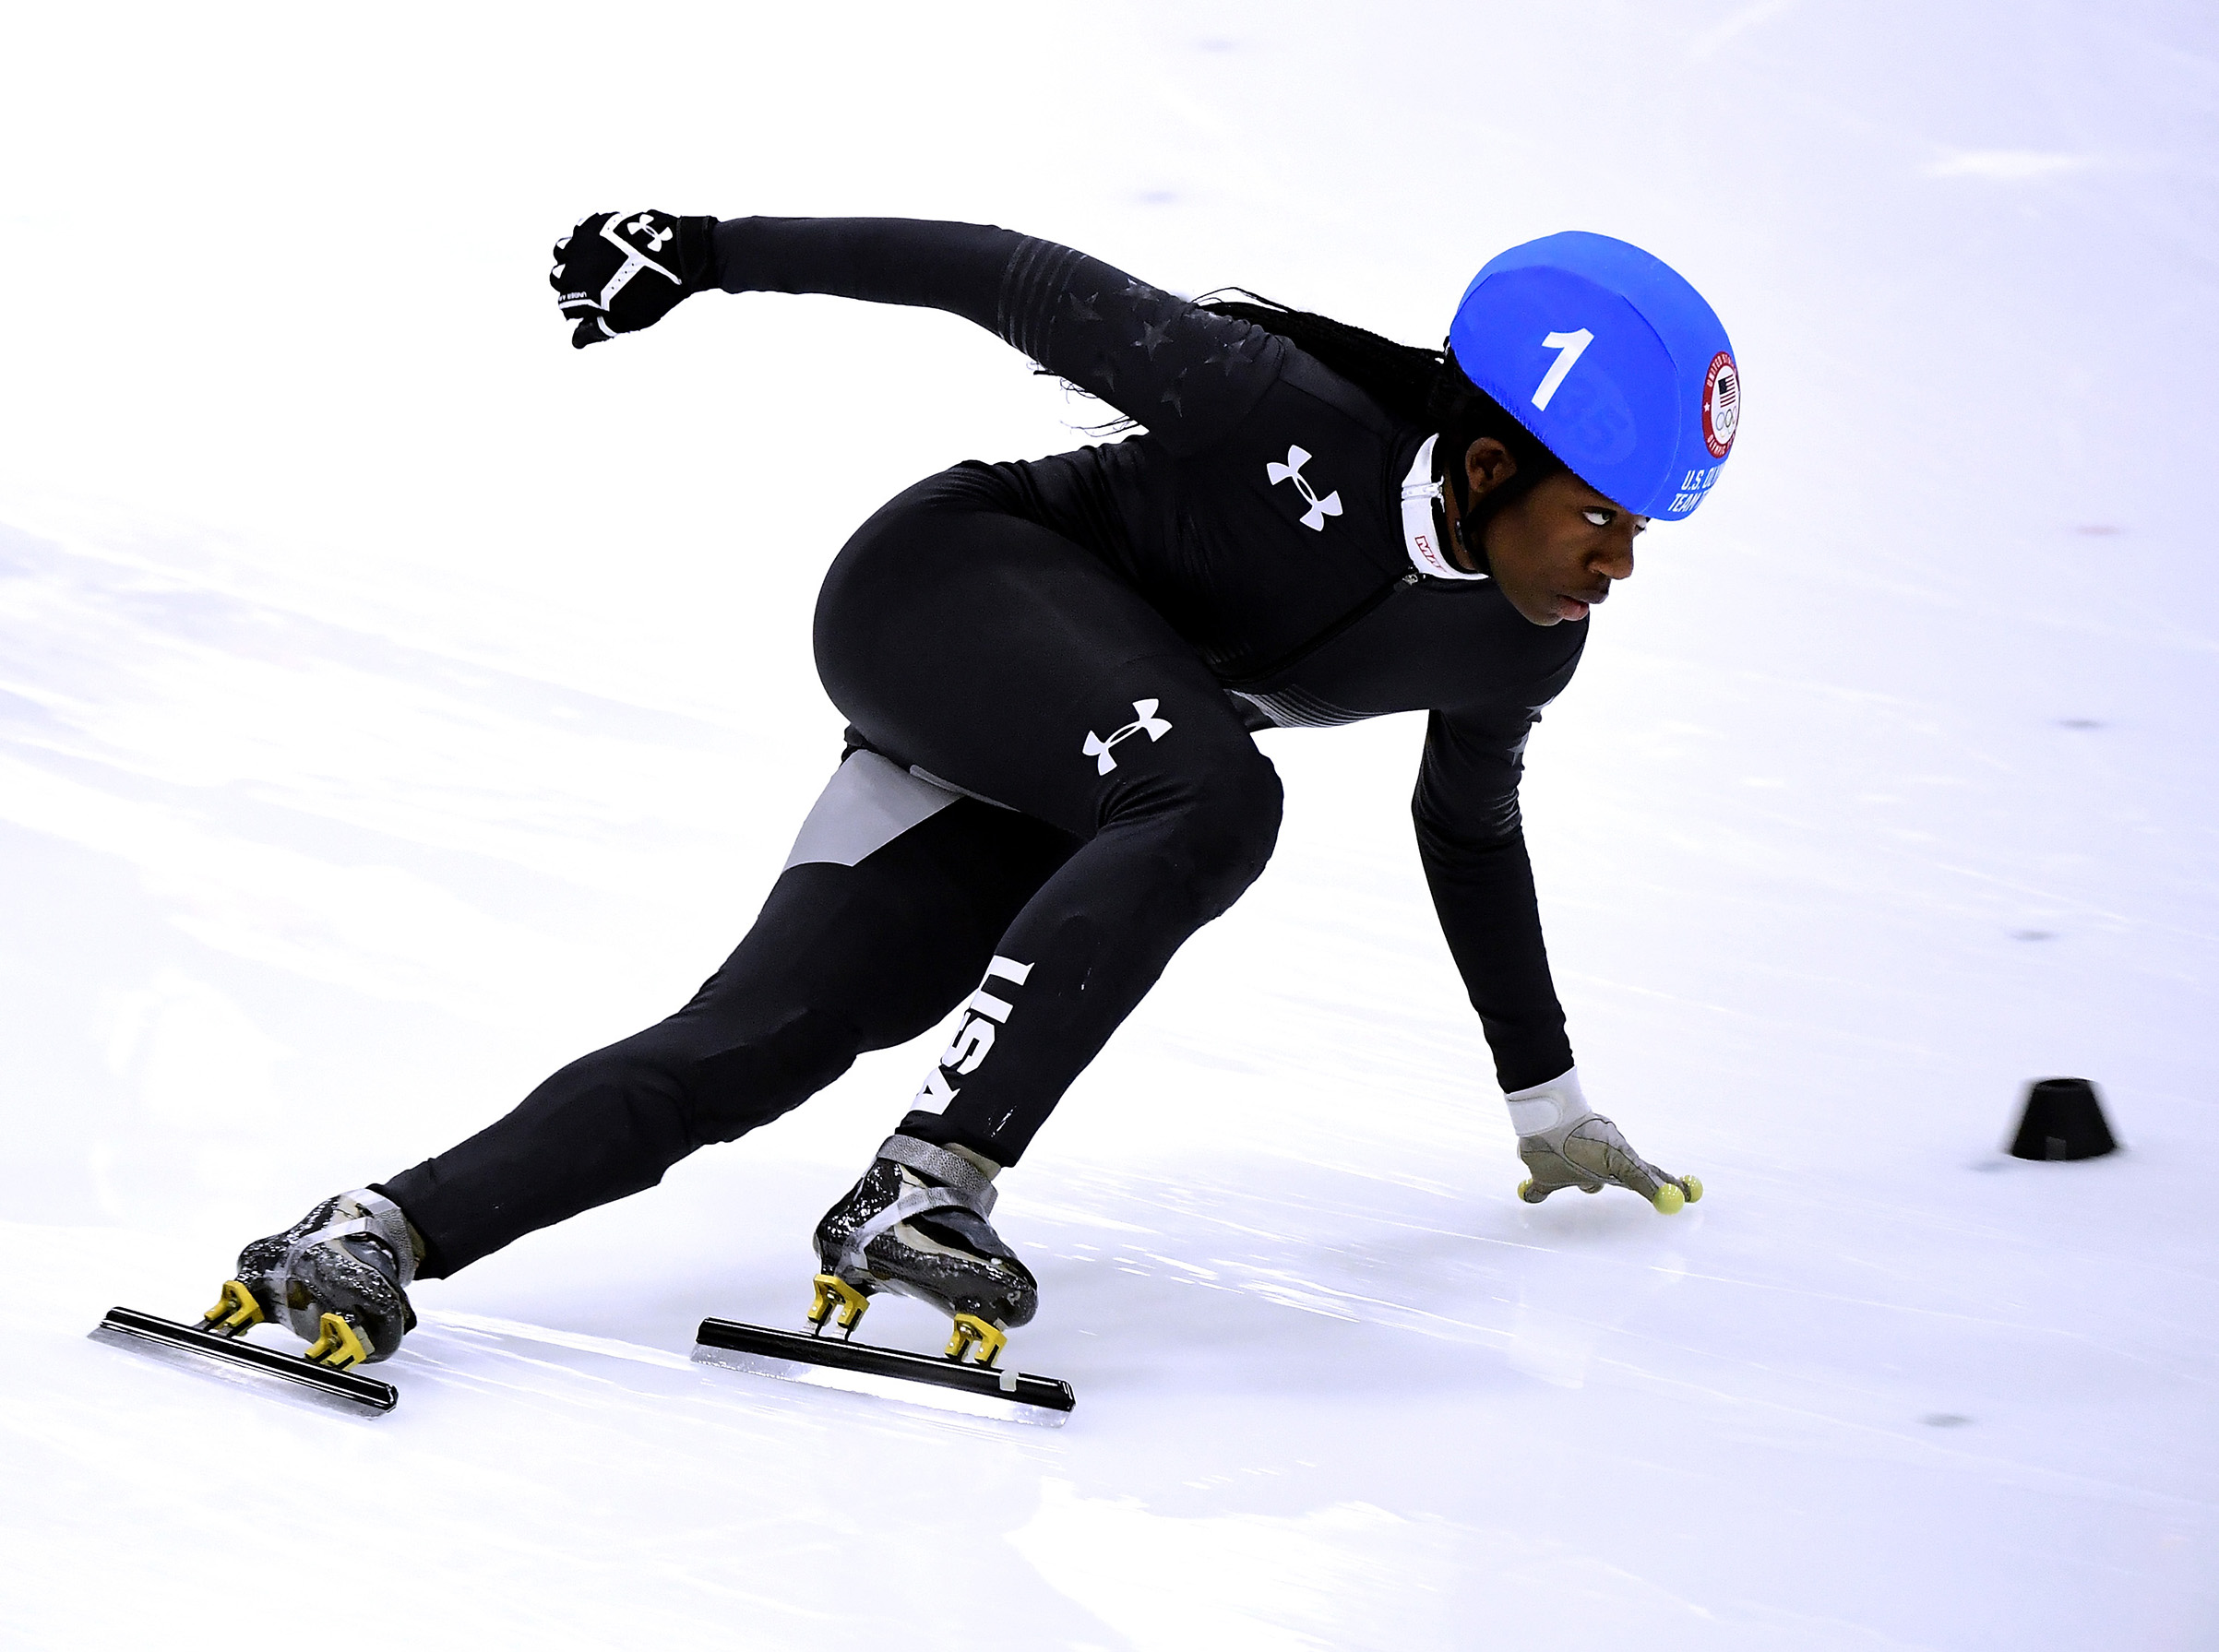 Olympic athlete Maame Biney takes the corner on her way to victory in the Women's 500 Meter A Final for a spot on the 2018 Olympic team on Dec. 16, 2017. Harry How—Getty Images